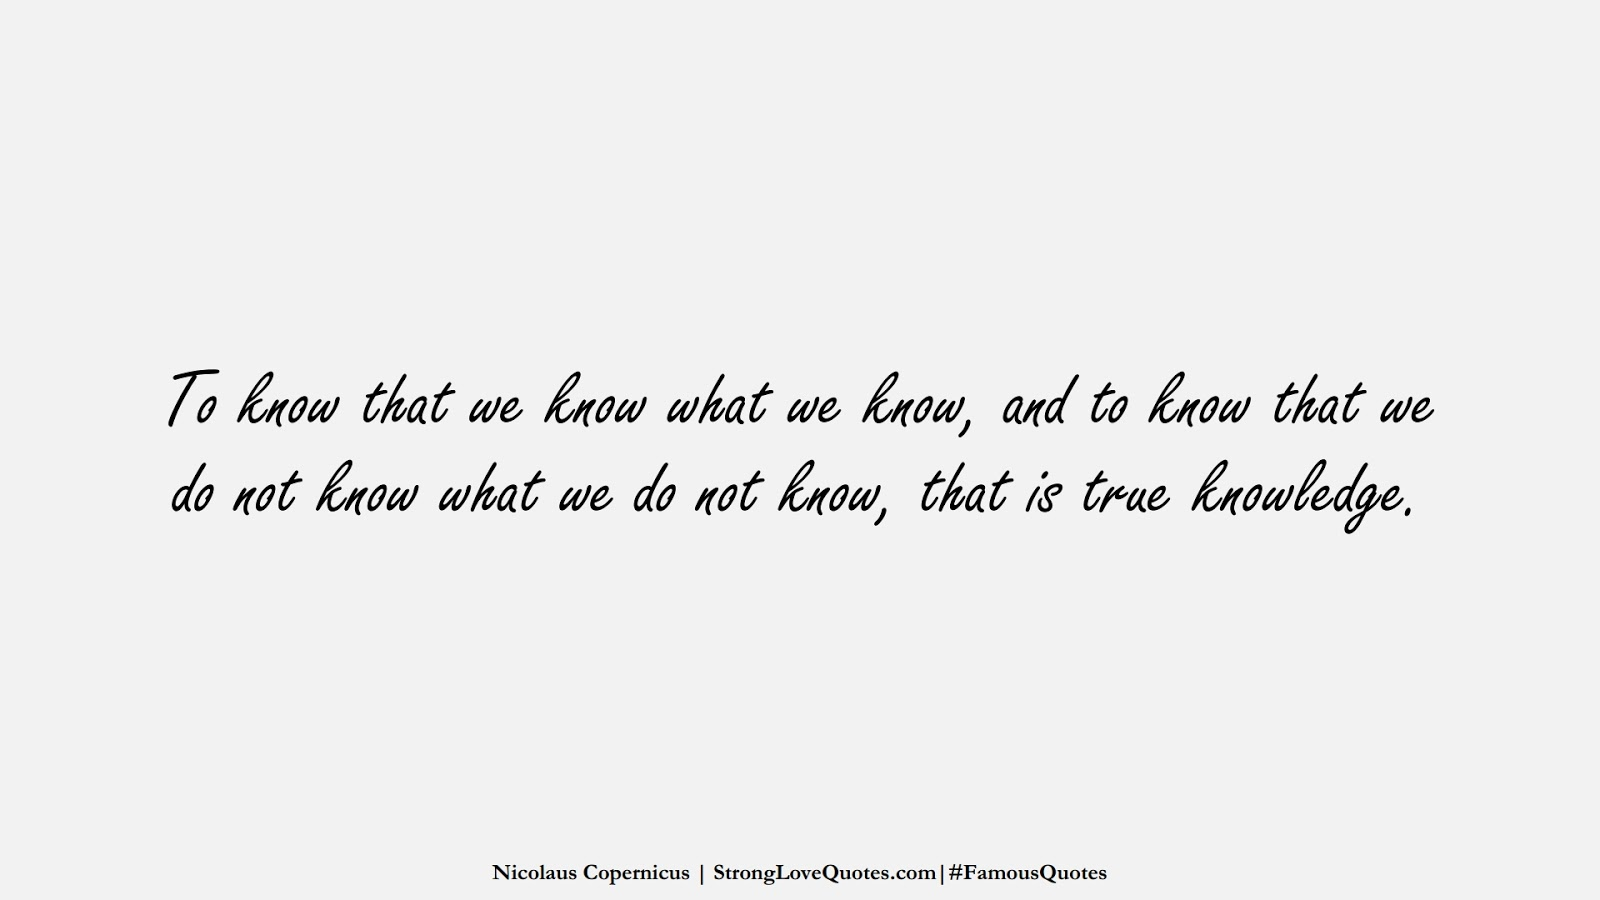 To know that we know what we know, and to know that we do not know what we do not know, that is true knowledge. (Nicolaus Copernicus);  #FamousQuotes